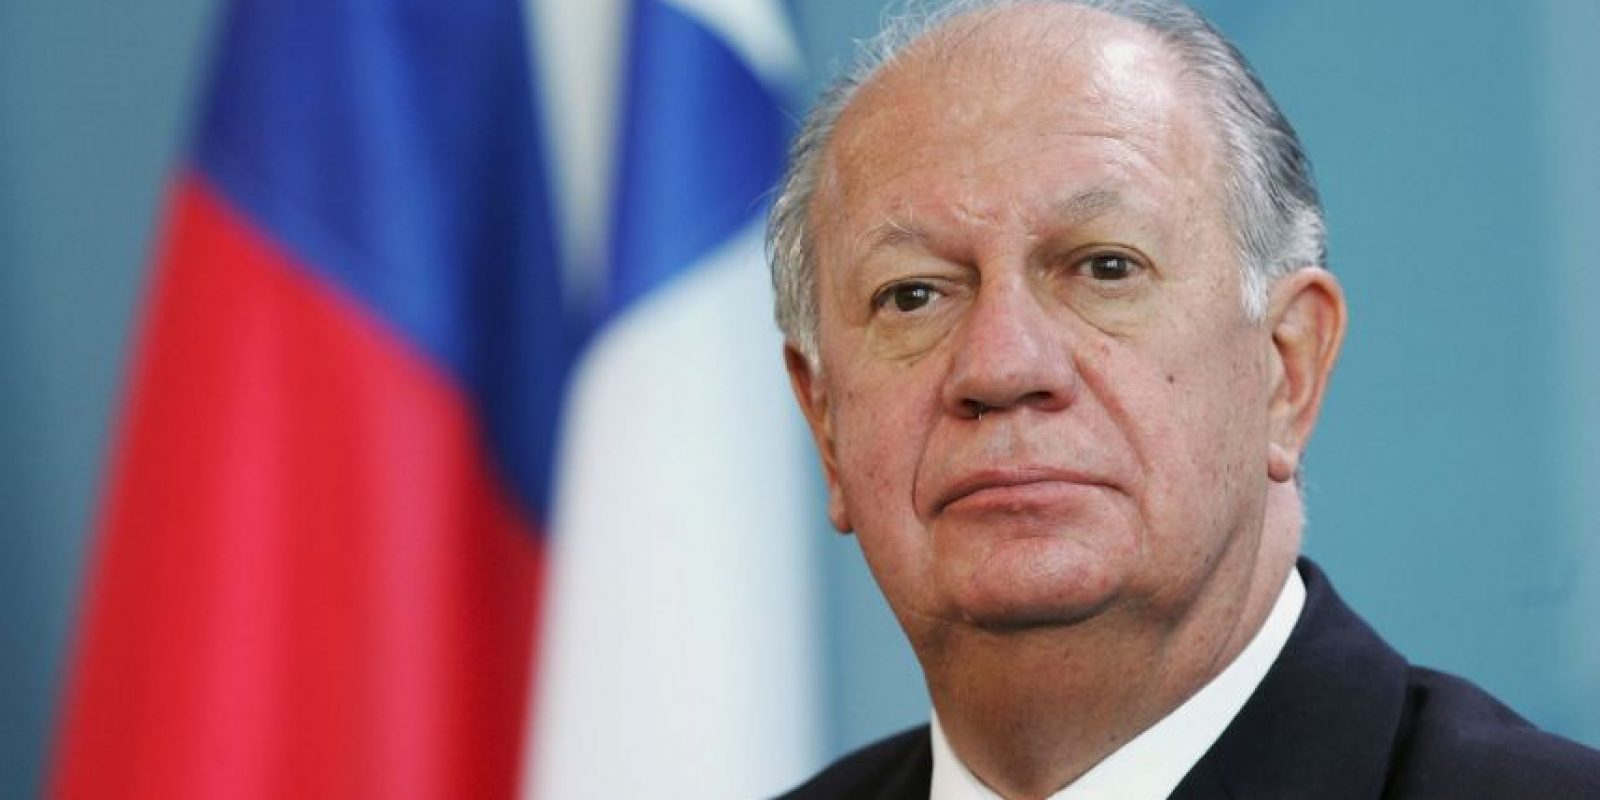 Ricardo Lagos, expresidente de Chile. Foto: Getty Images